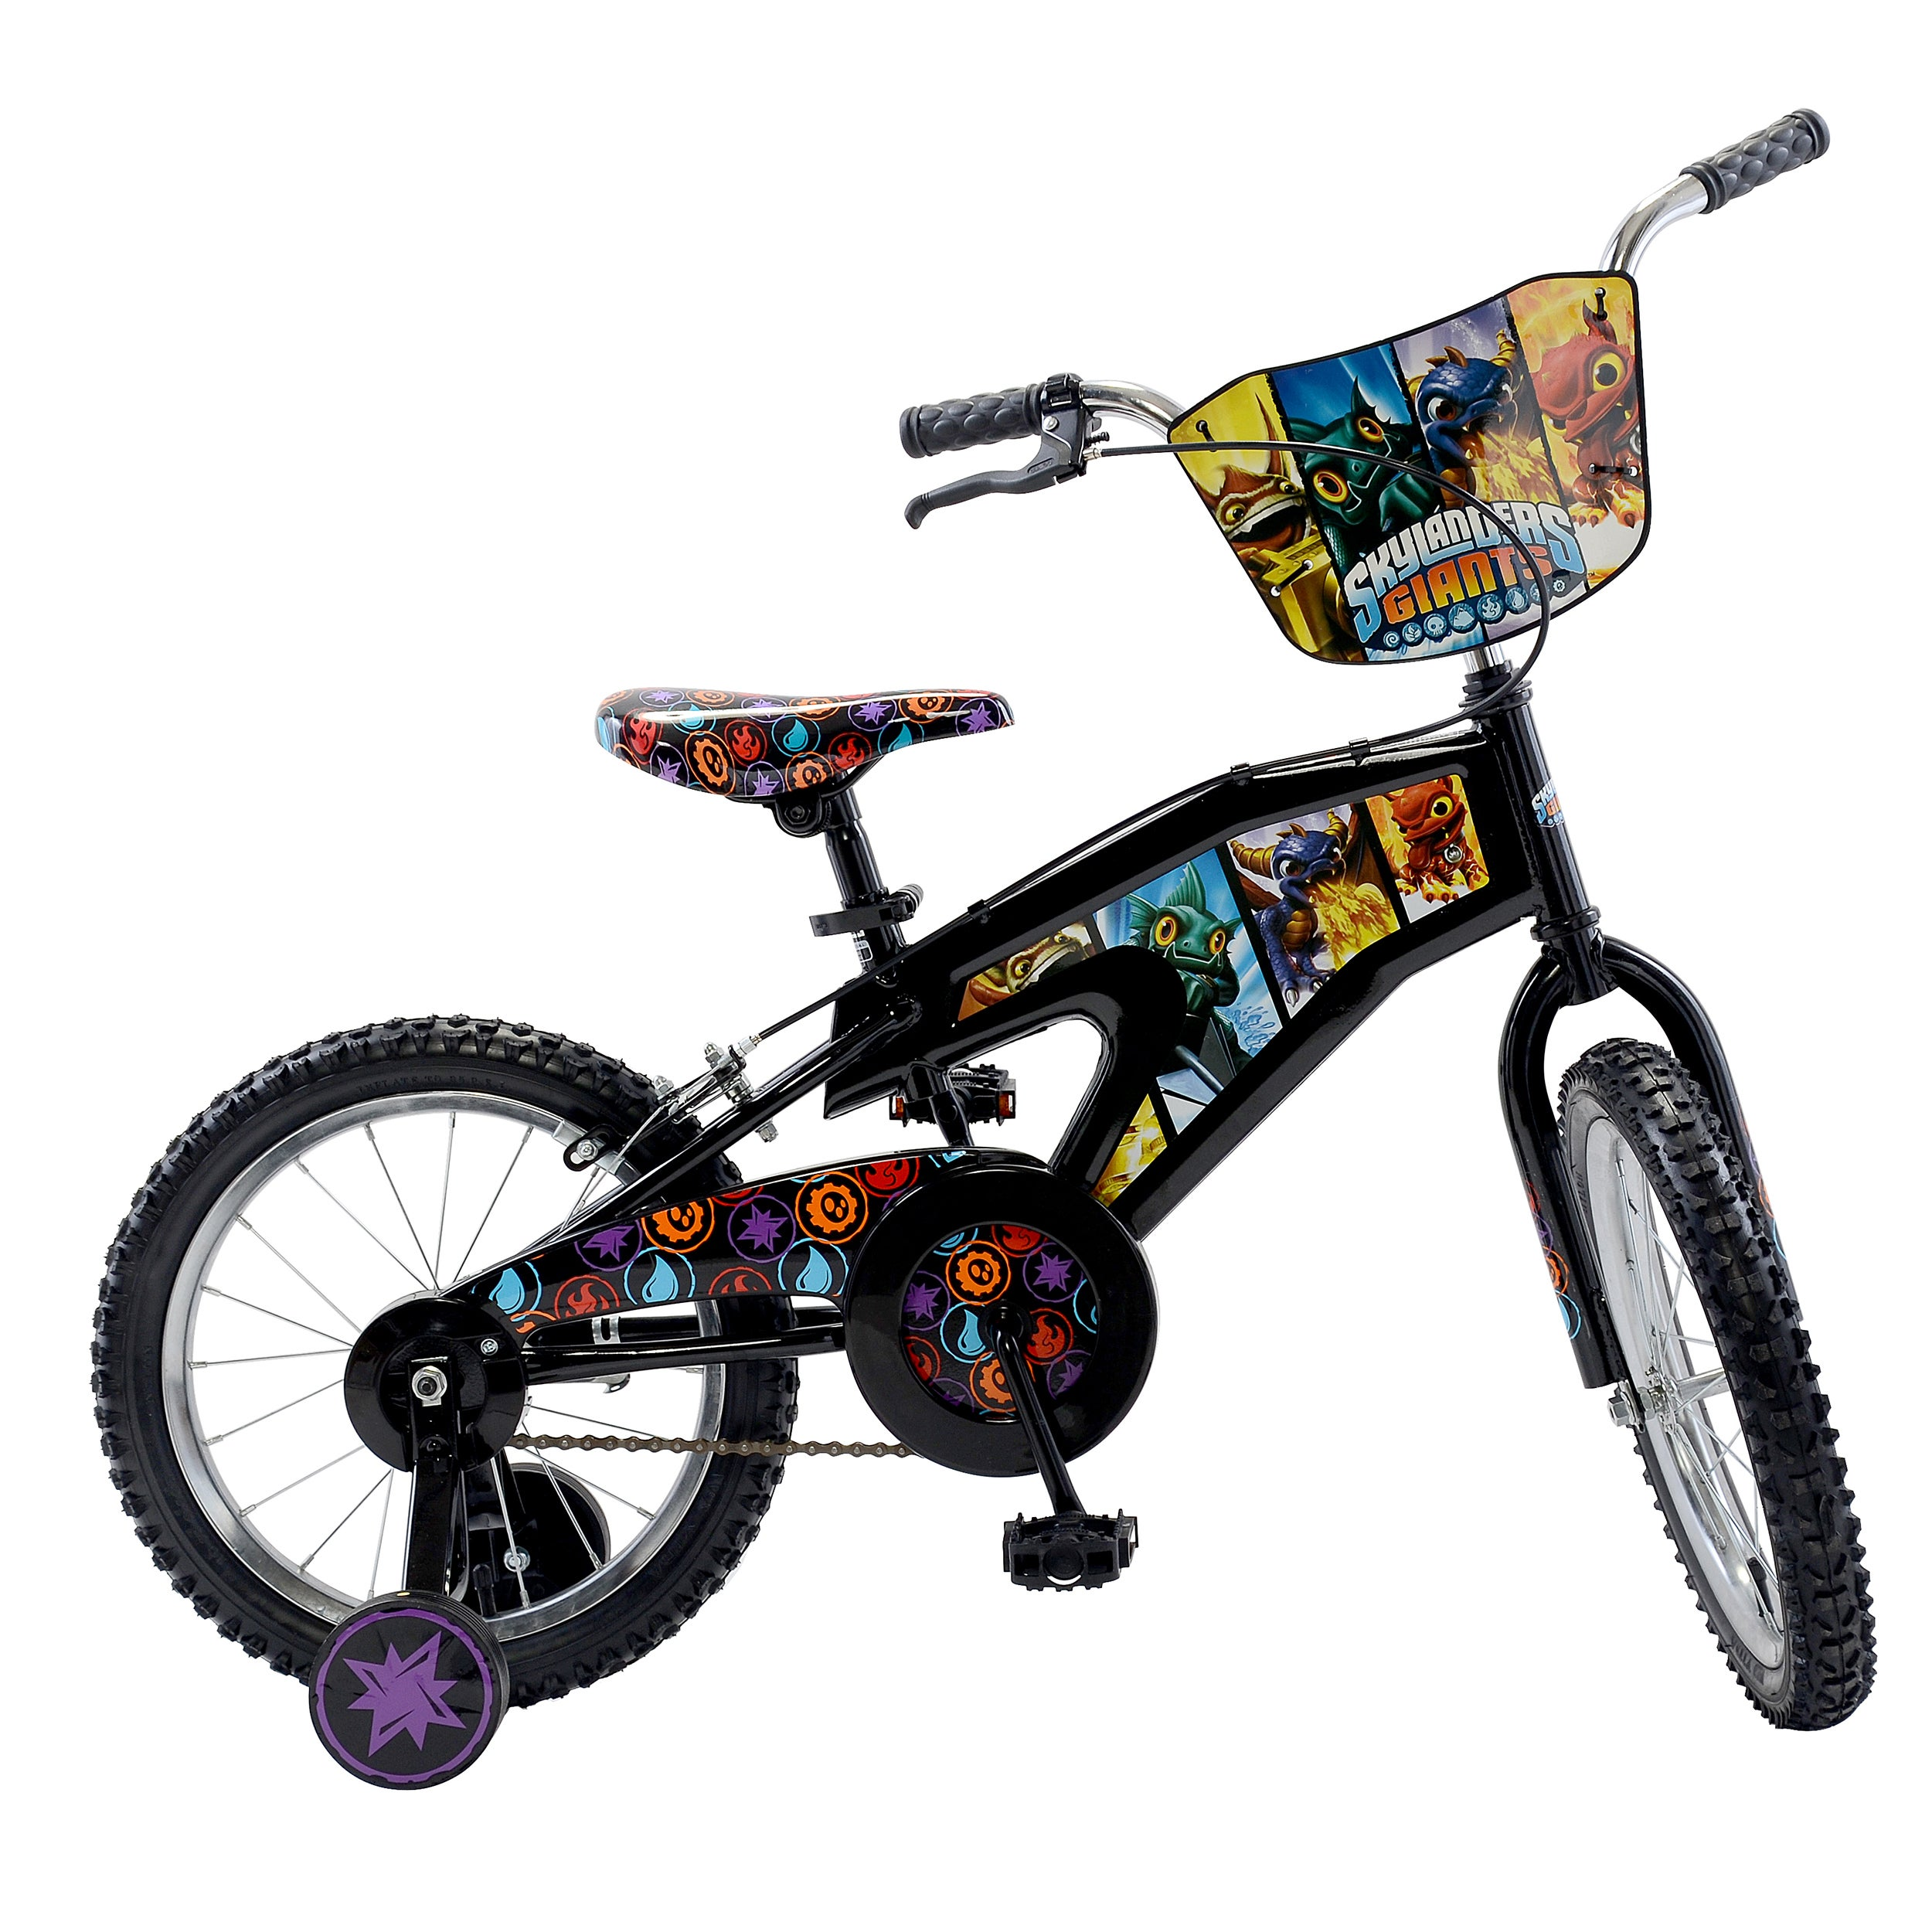 Street Flyers Skylanders B16 Kids Bicycle